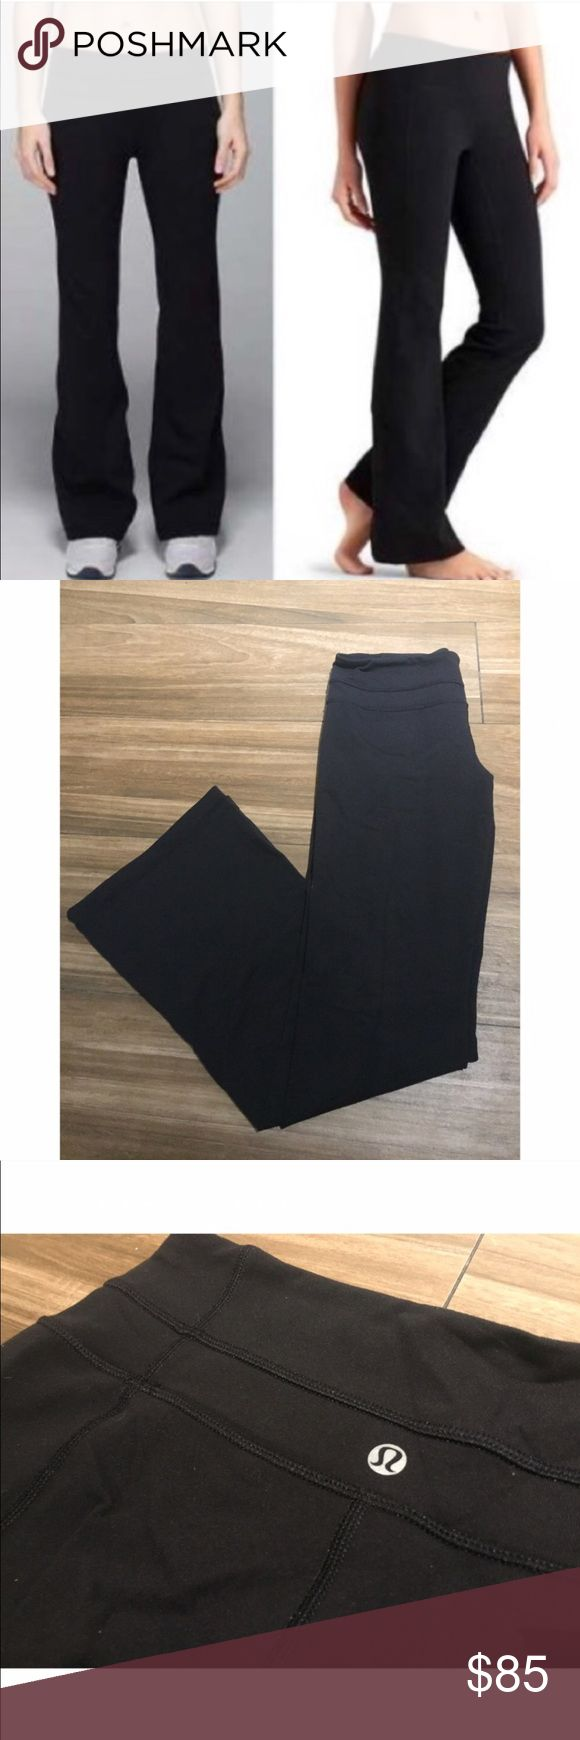 Lululemon Athletica Black Wide Leg Yoga Pants Lululemon Athletica Black Bell Bottom Exercise Pants in solid black. Size 6. Previously owned, great condition. Made from a very stretchy, comfortable material. Perfect for long workouts! lululemon athletica Pants